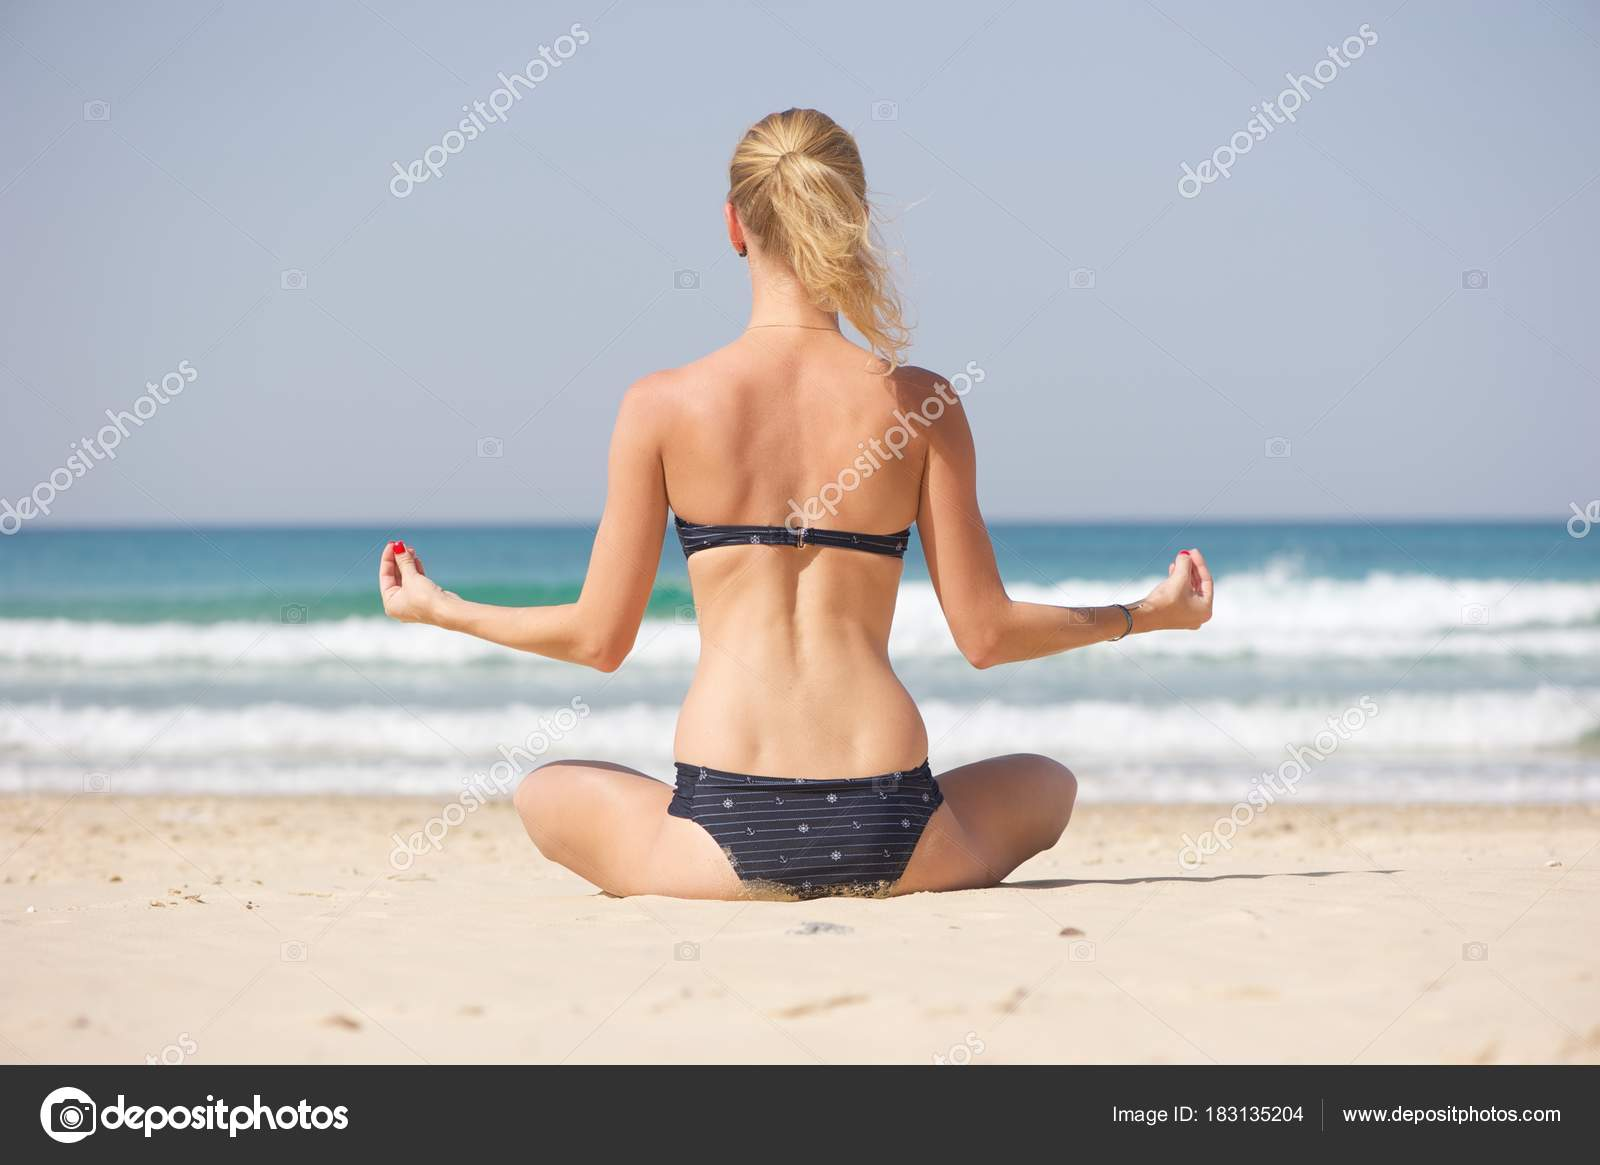 A blonde woman facing away from the camera doing yoga on a beach in a a  bikini. Beautiful sea in the background.– stock image